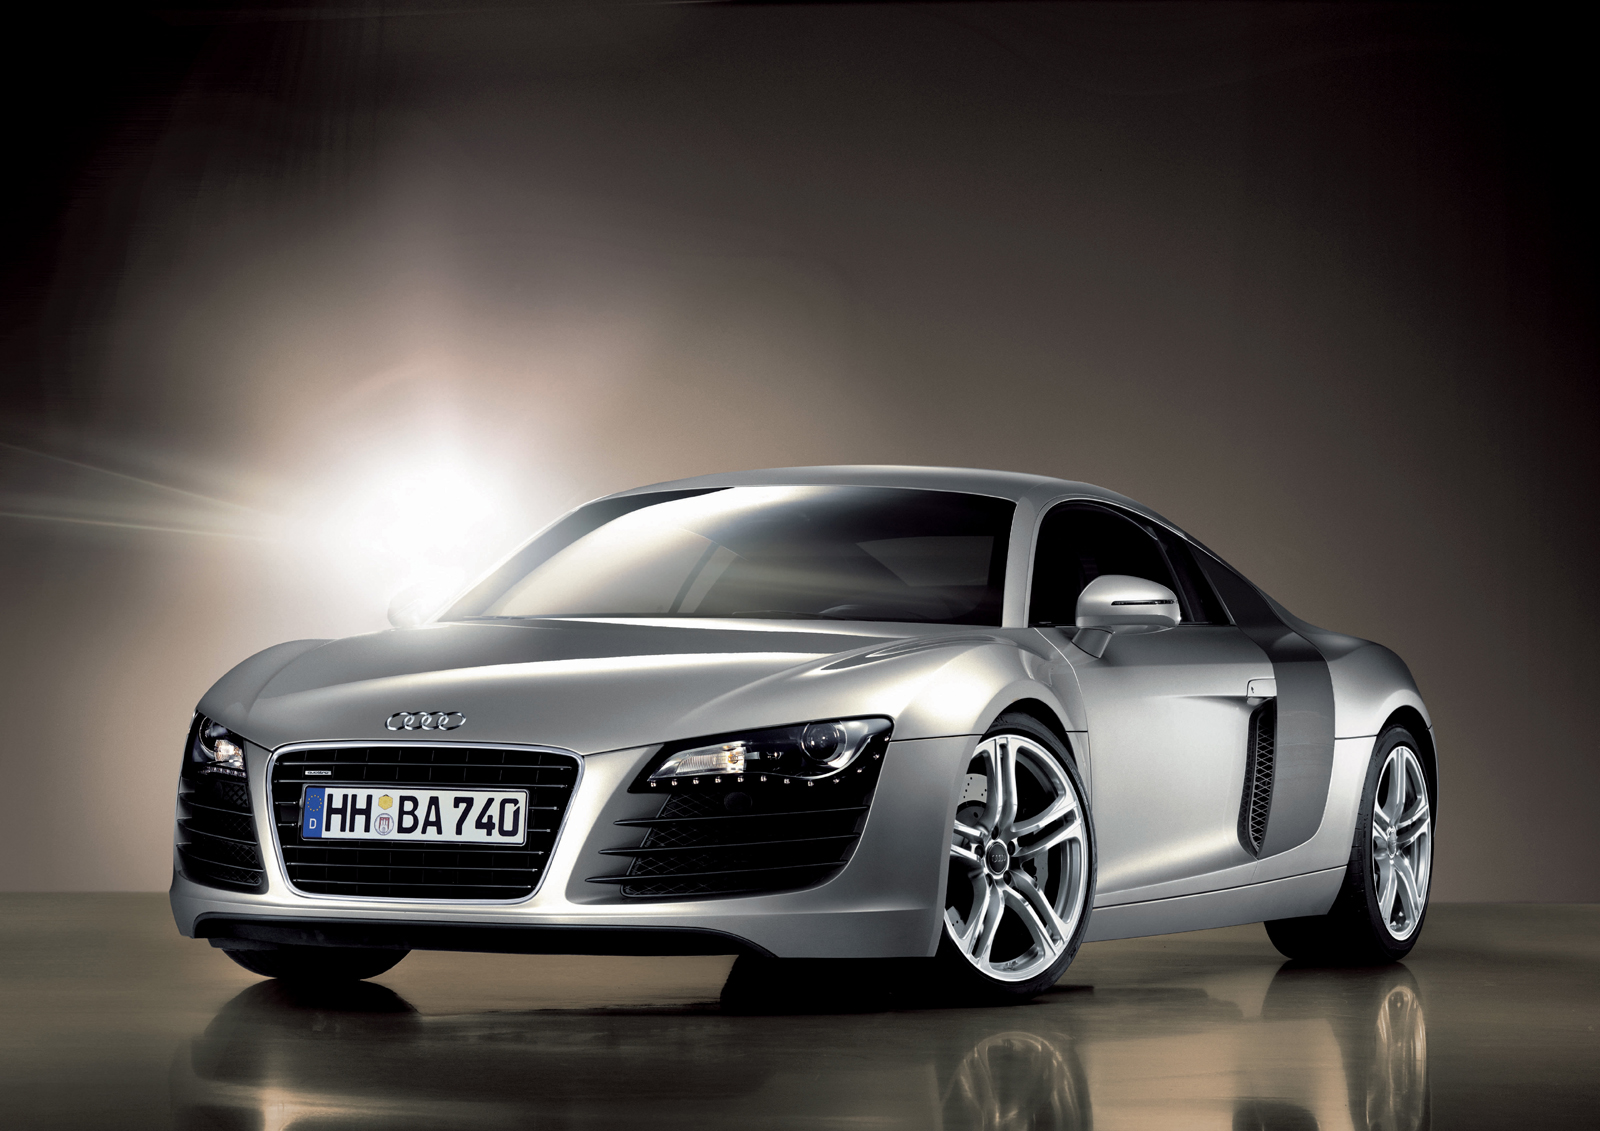 audi sport cars audi r8 hybrid cars. Black Bedroom Furniture Sets. Home Design Ideas